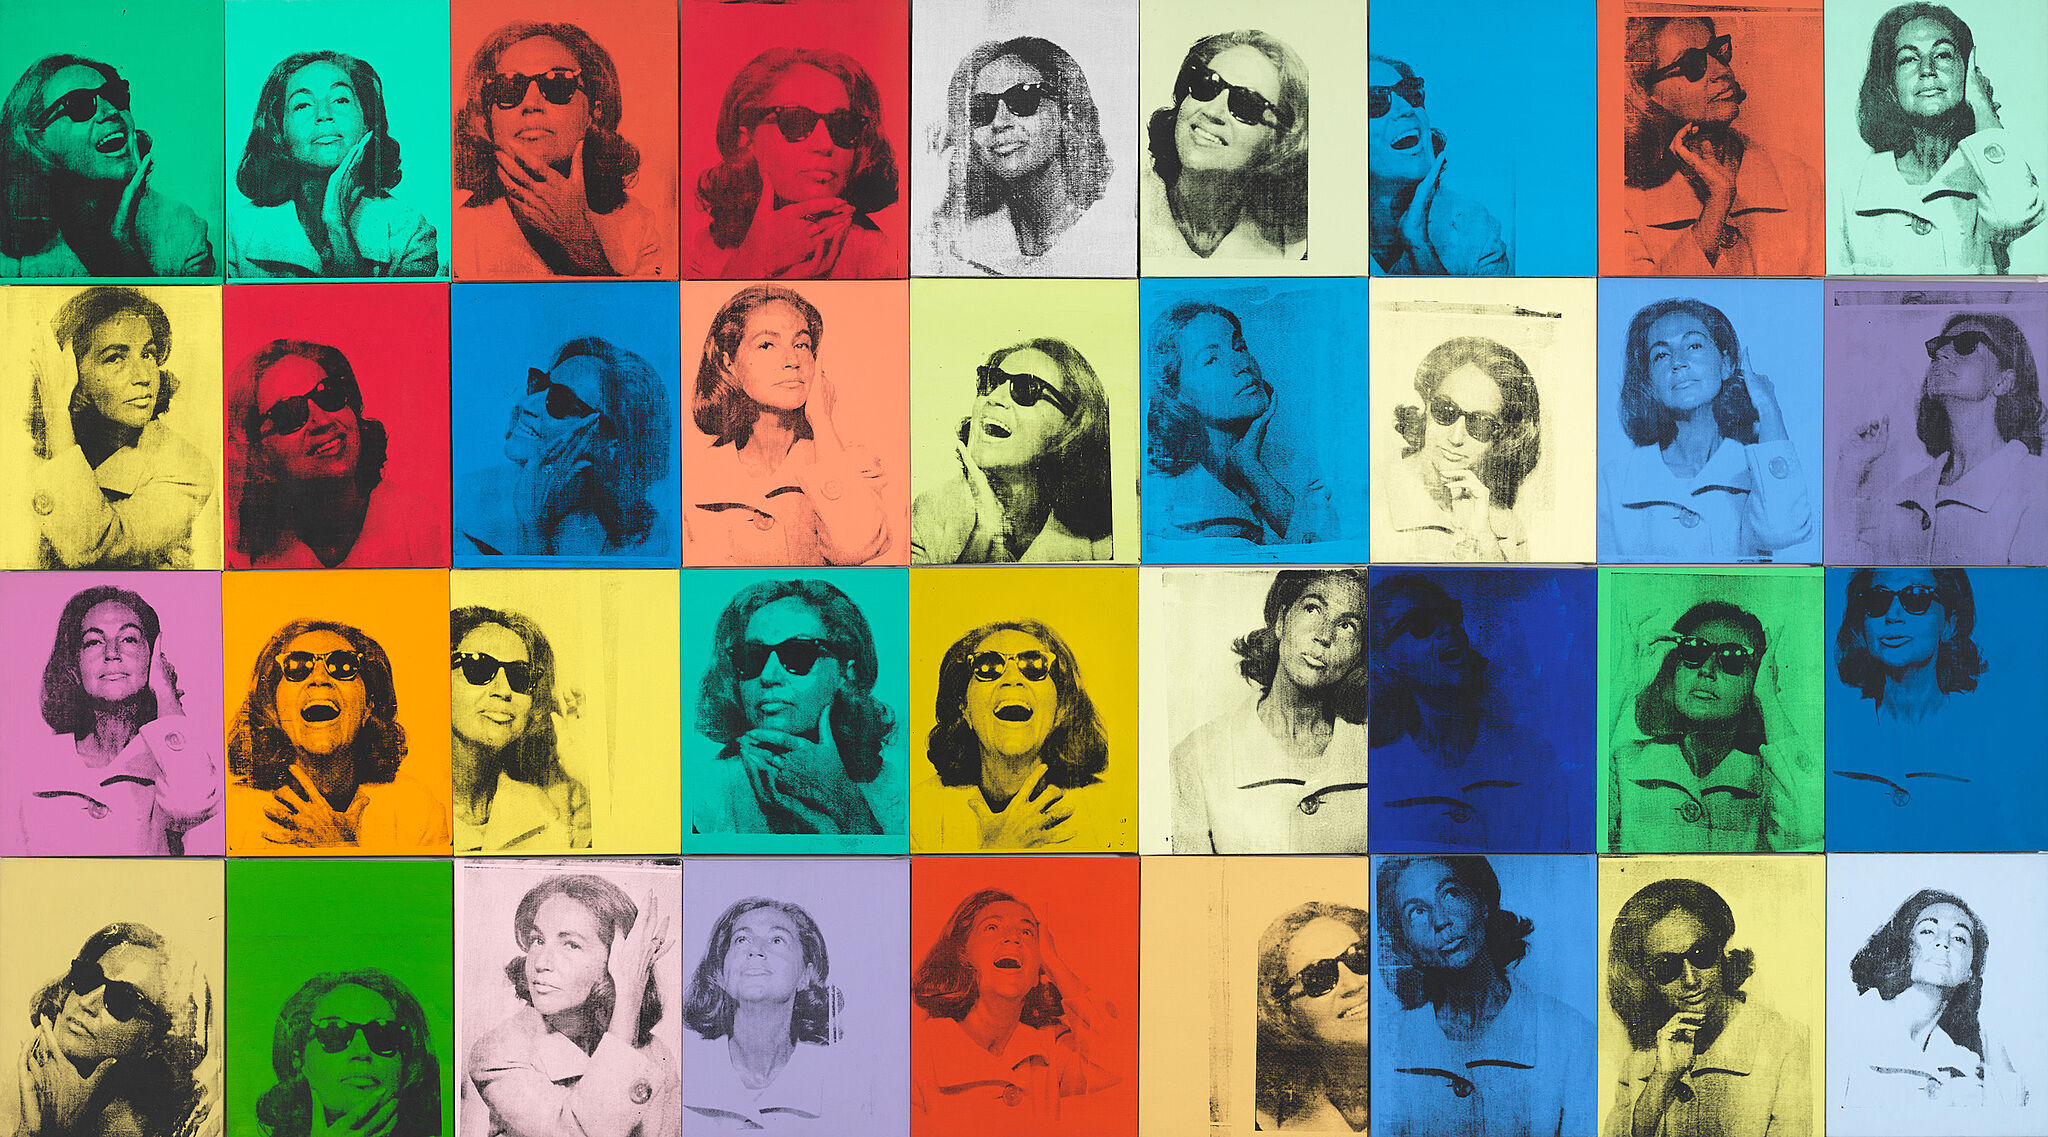 Colorful artwork of woman faces by Andy Warhol.